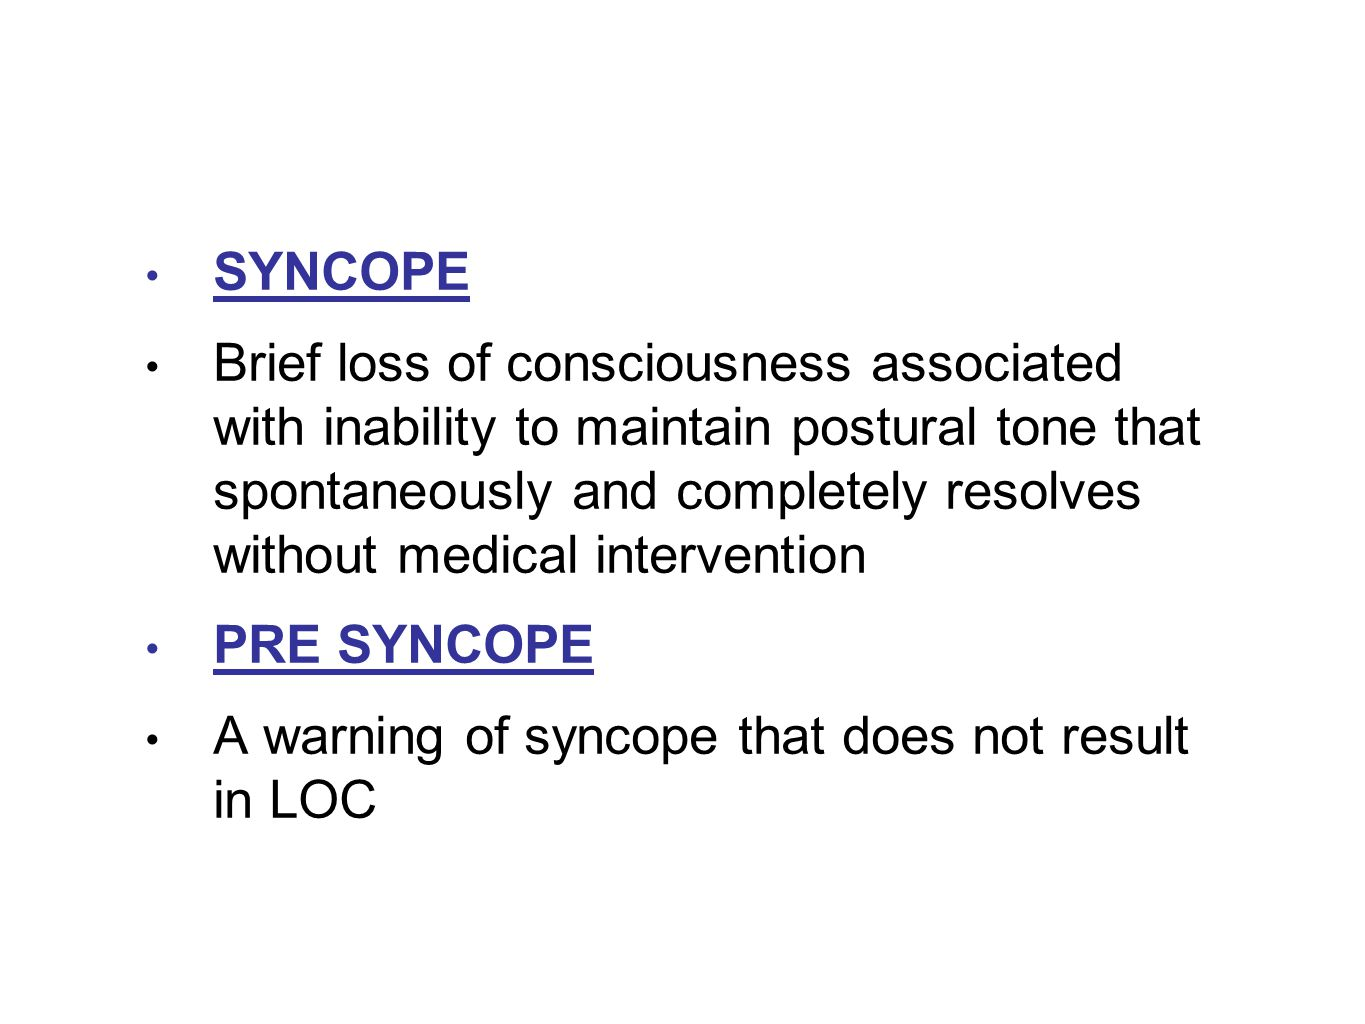 SYNCOPE Brief loss of consciousness associated with inability to maintain postural tone that spontaneously and completely resolves without medical int